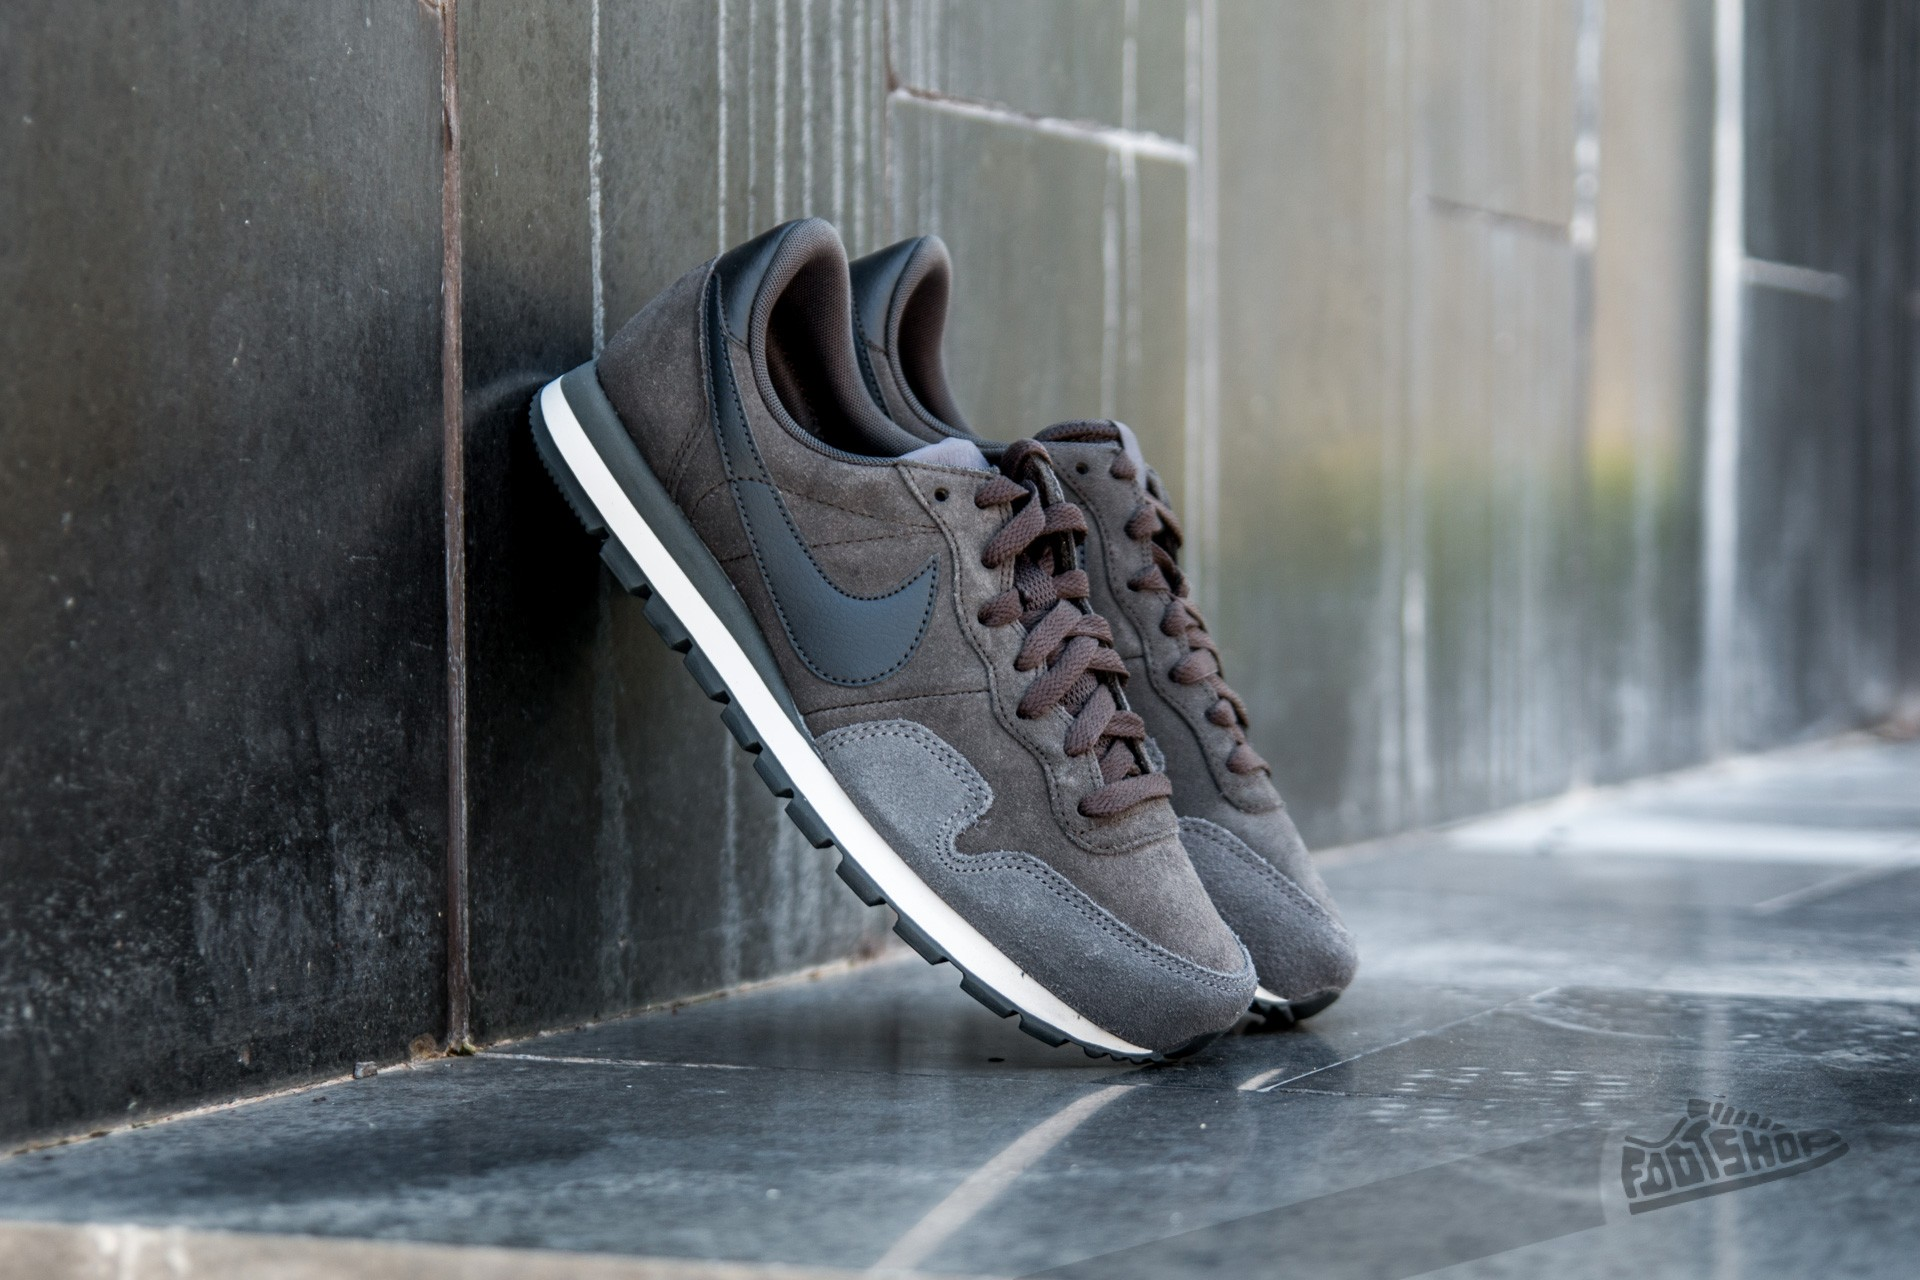 Nike Air Pegasus 83 LTR Deep Pewter/ Anthracite-Dark Grey